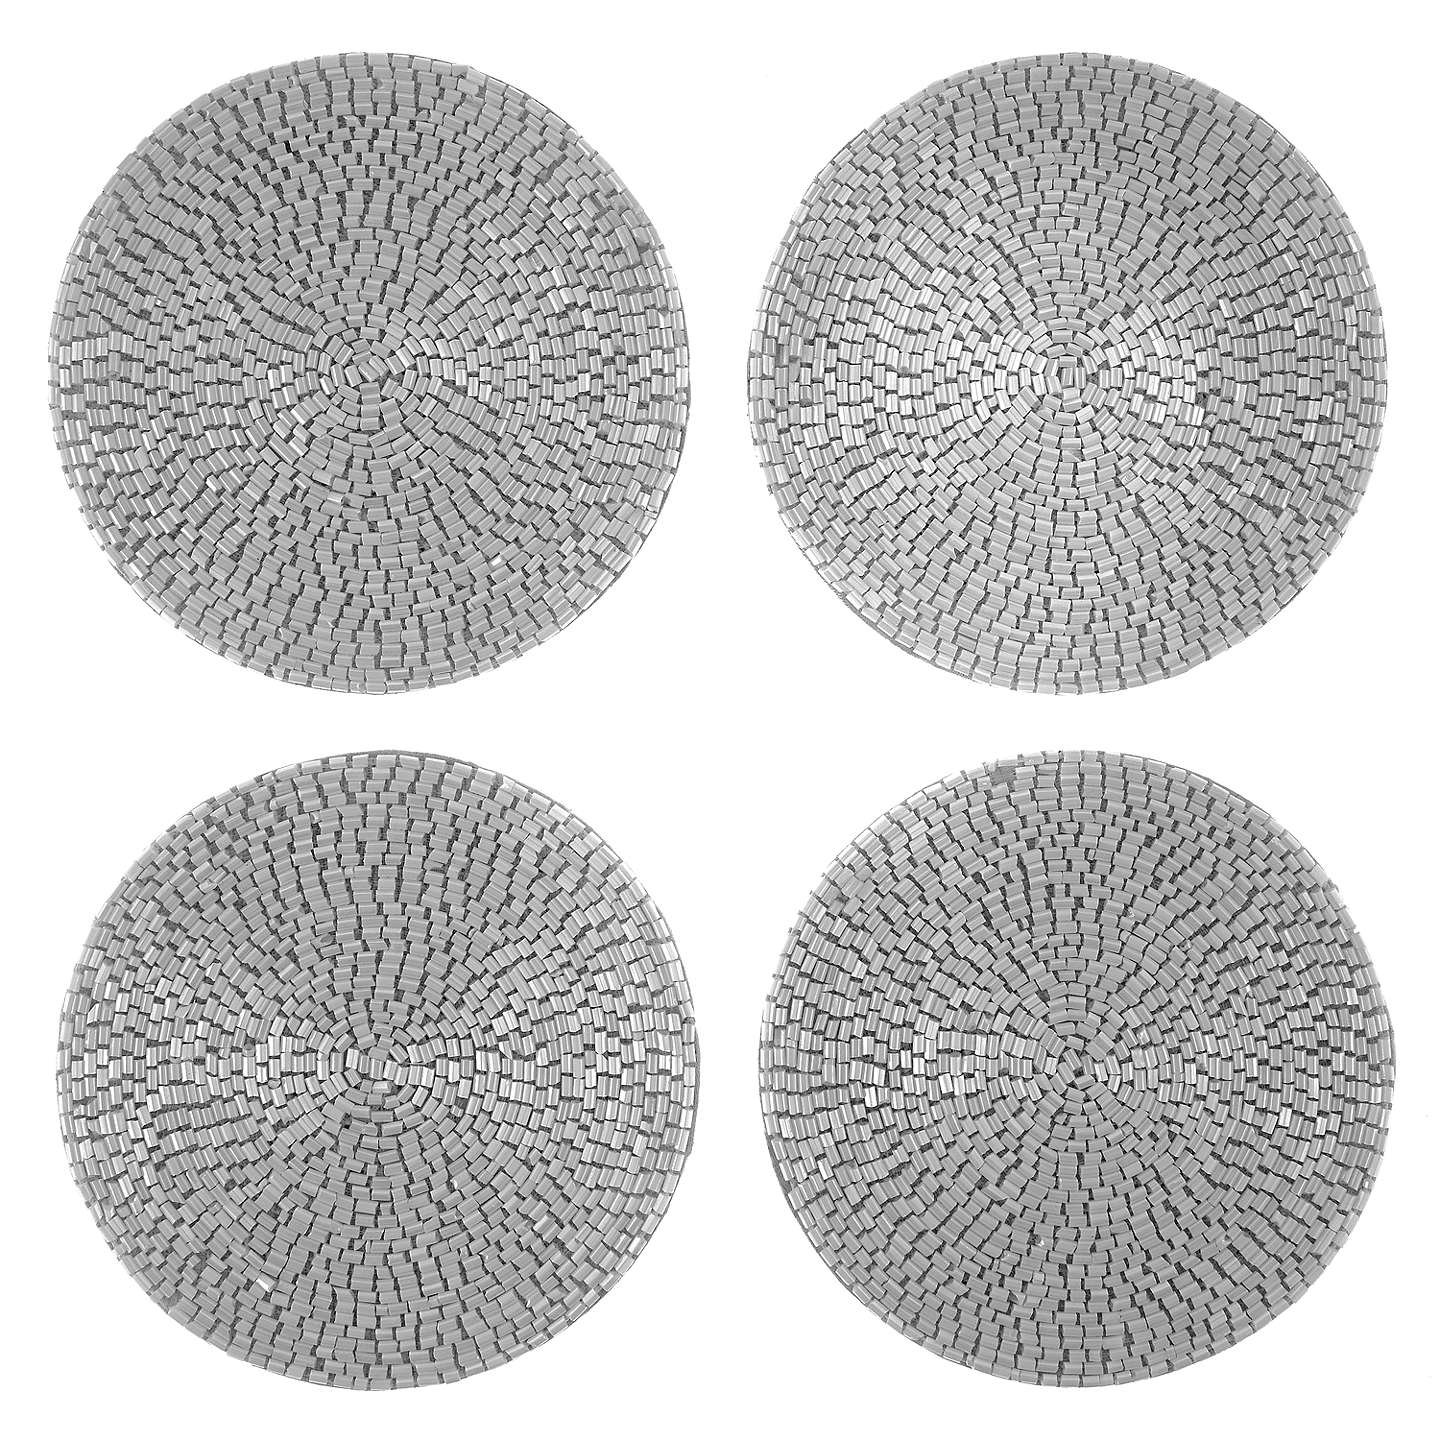 BuyJohn Lewis Glass Bead Coasters, Set of 4, White Online at johnlewis.com